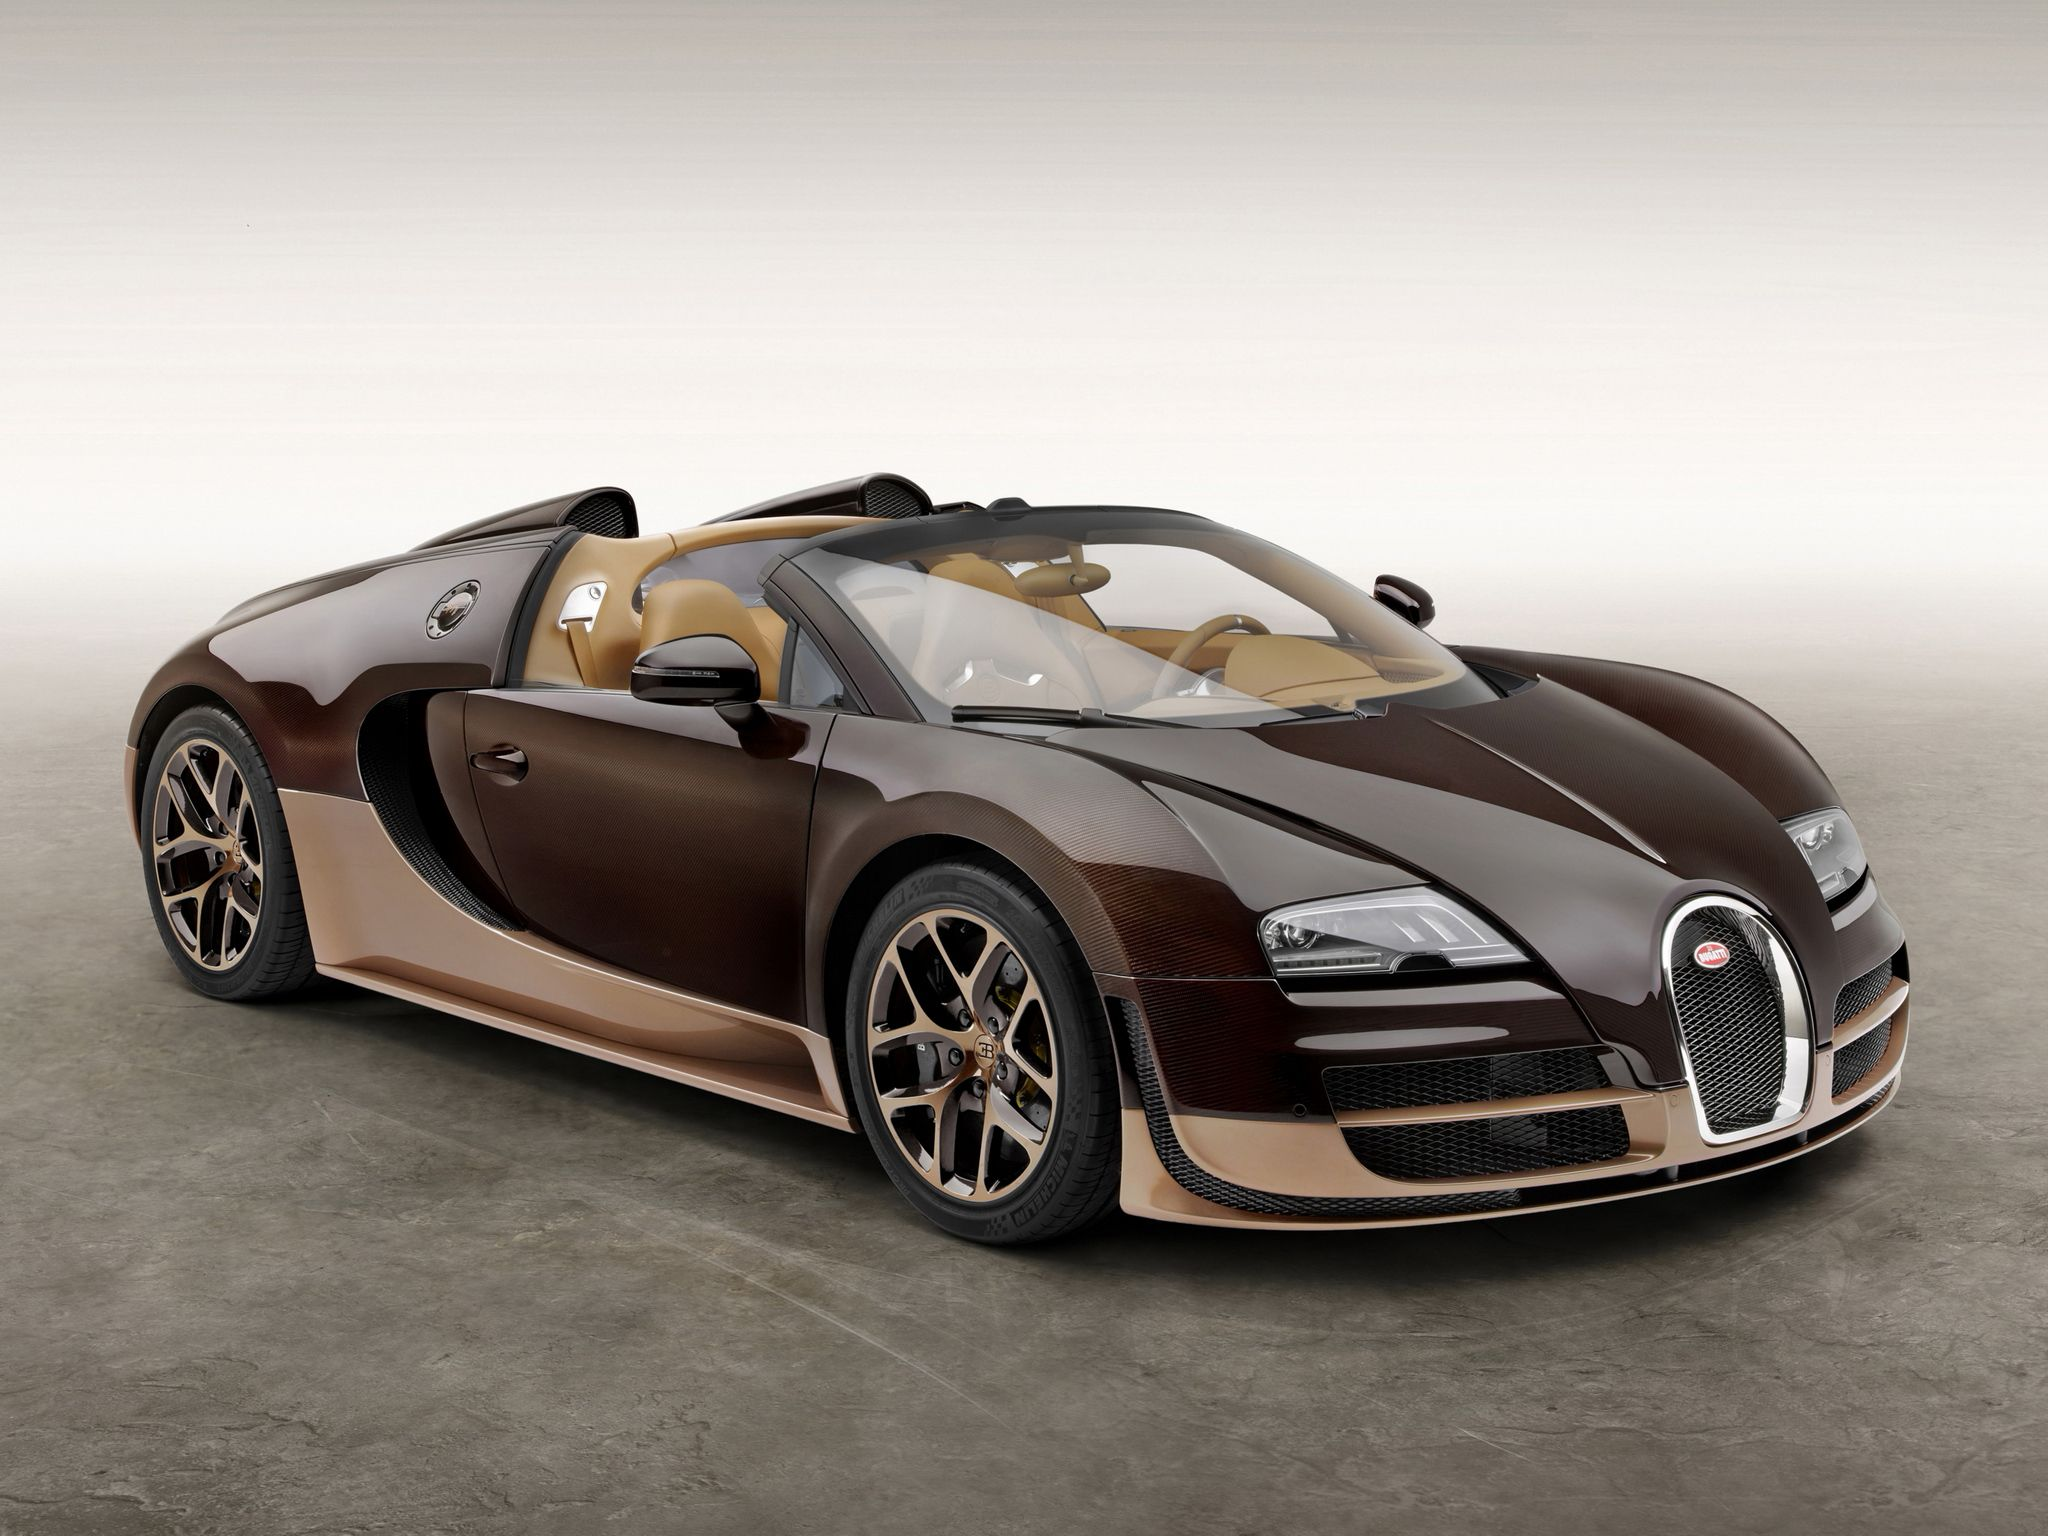 10999c24fe8ca8ae580ec17303735dae Exciting Bugatti Veyron Zero to Sixty Cars Trend